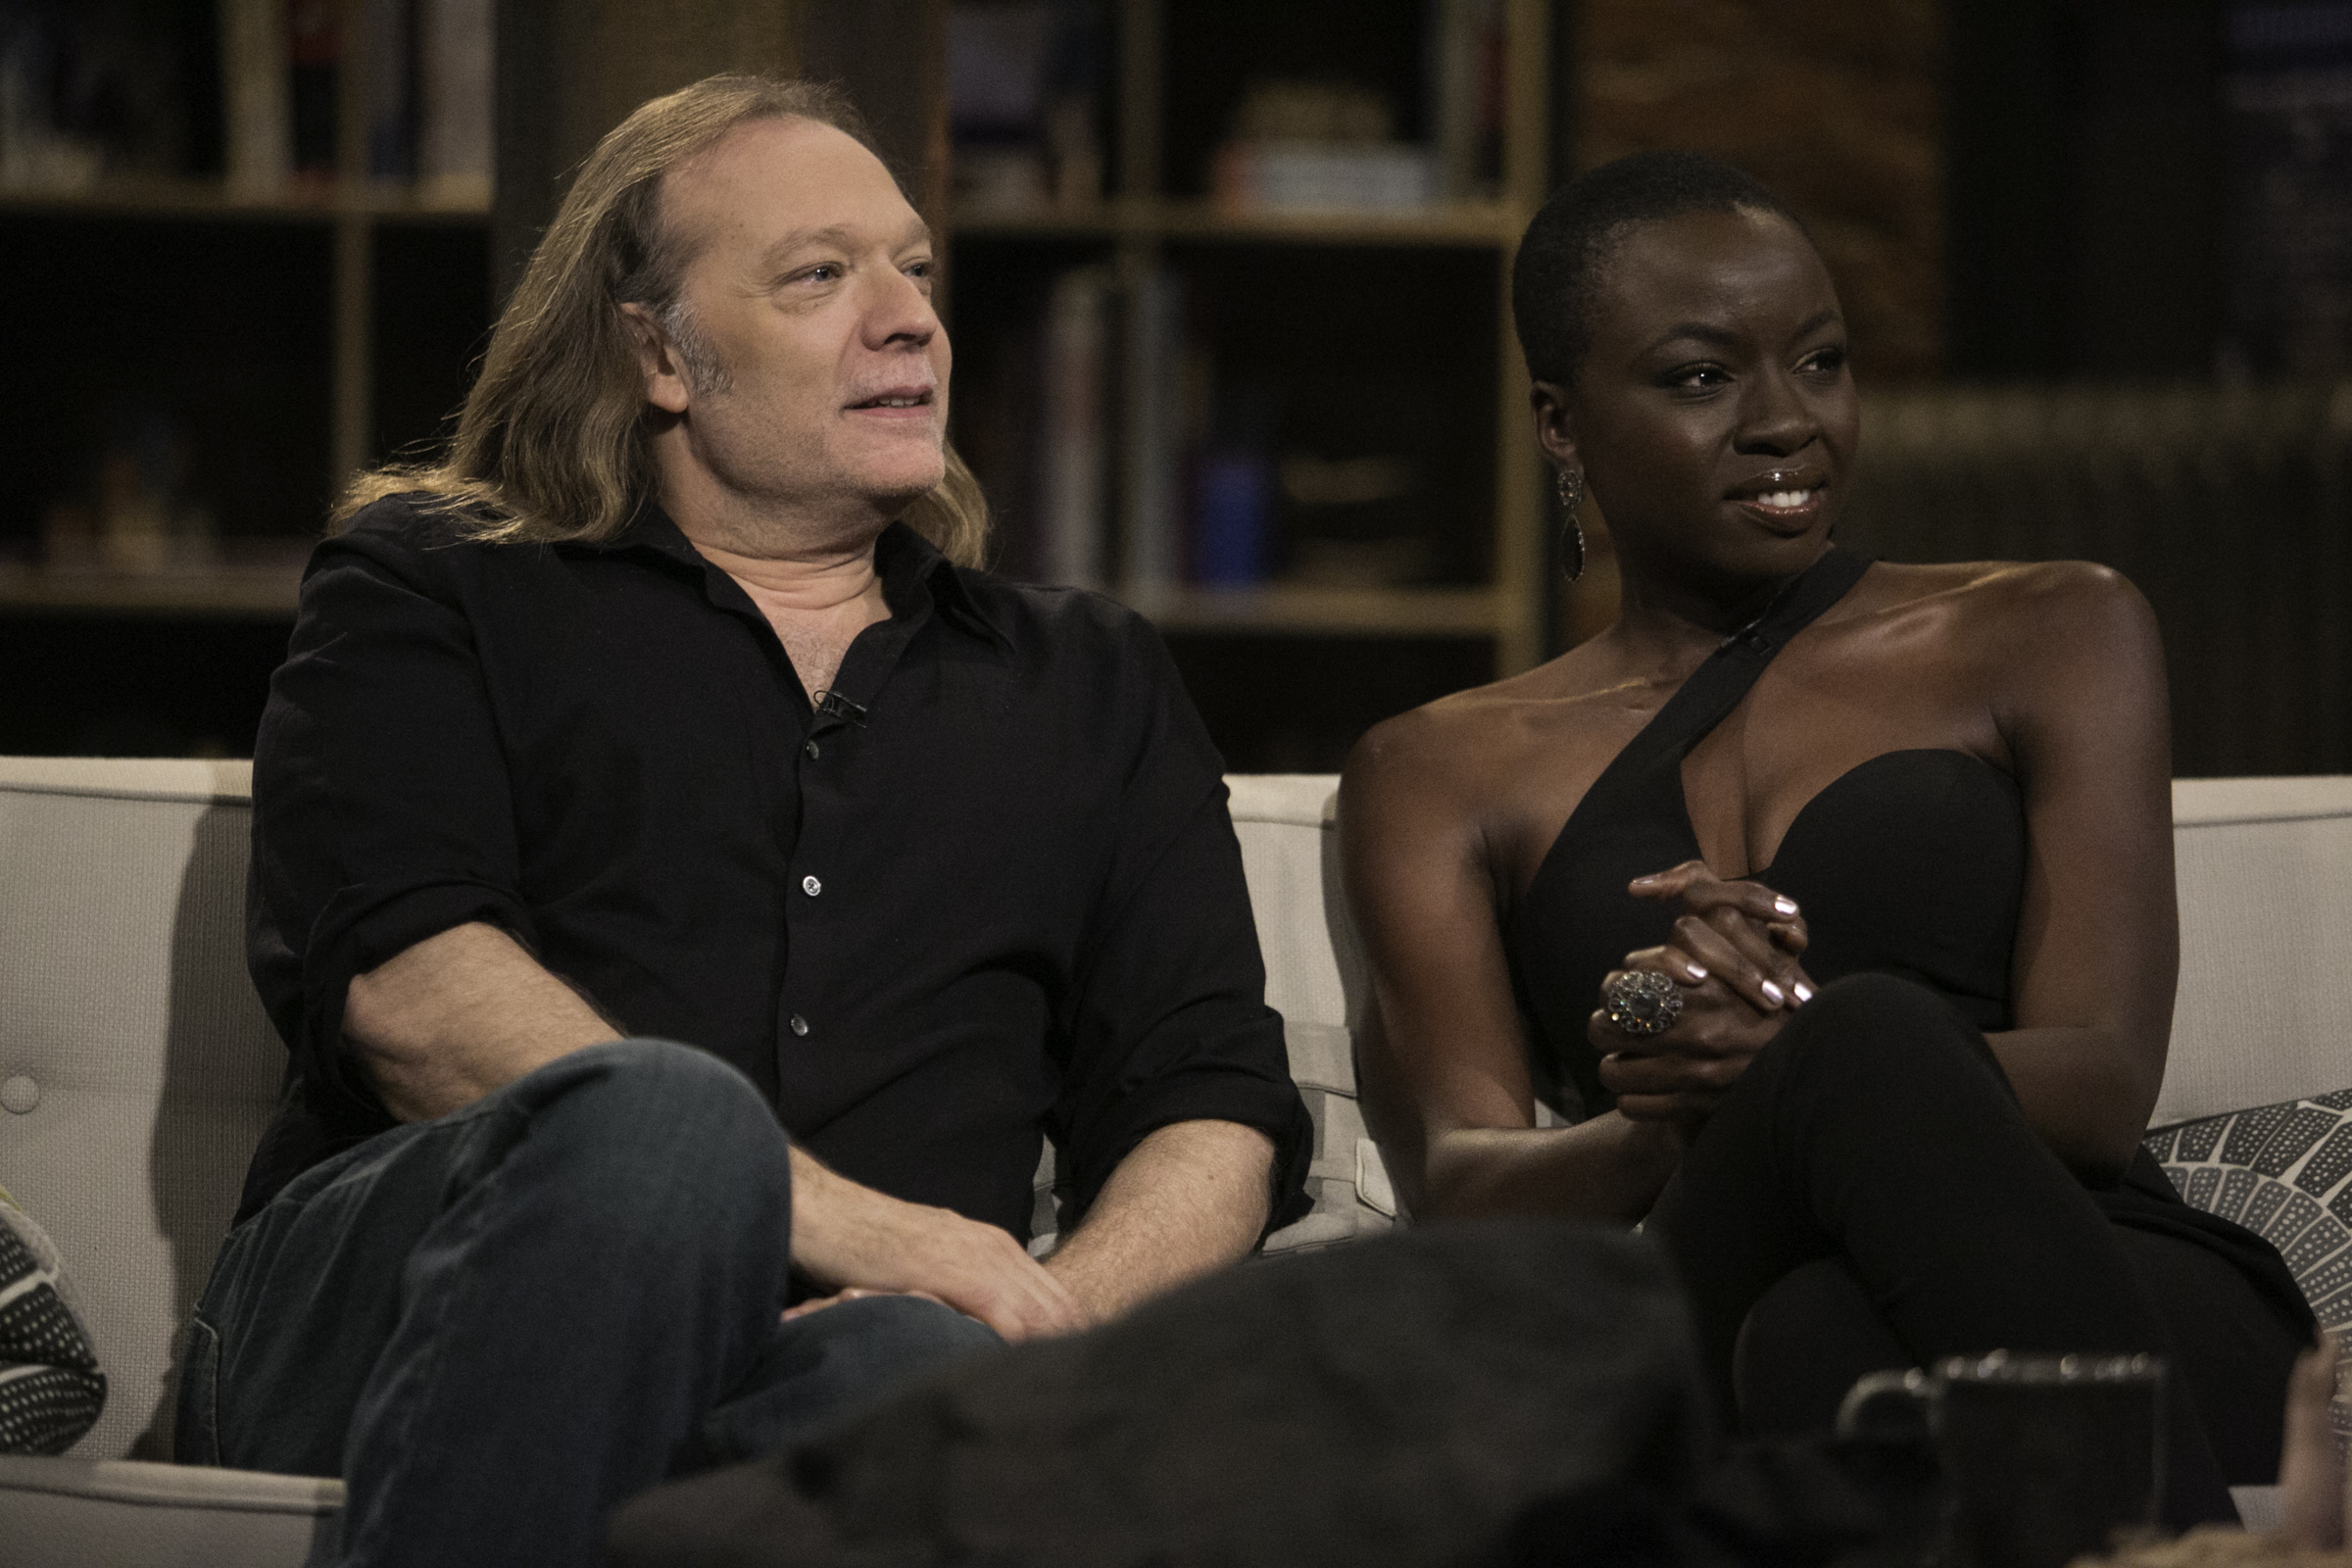 Greg Nicotero (The Walking Dead Executive Producer, Special FX Makeup Designer) and Danai Gurira (Michonne) in Episode 9 of The Talking Dead